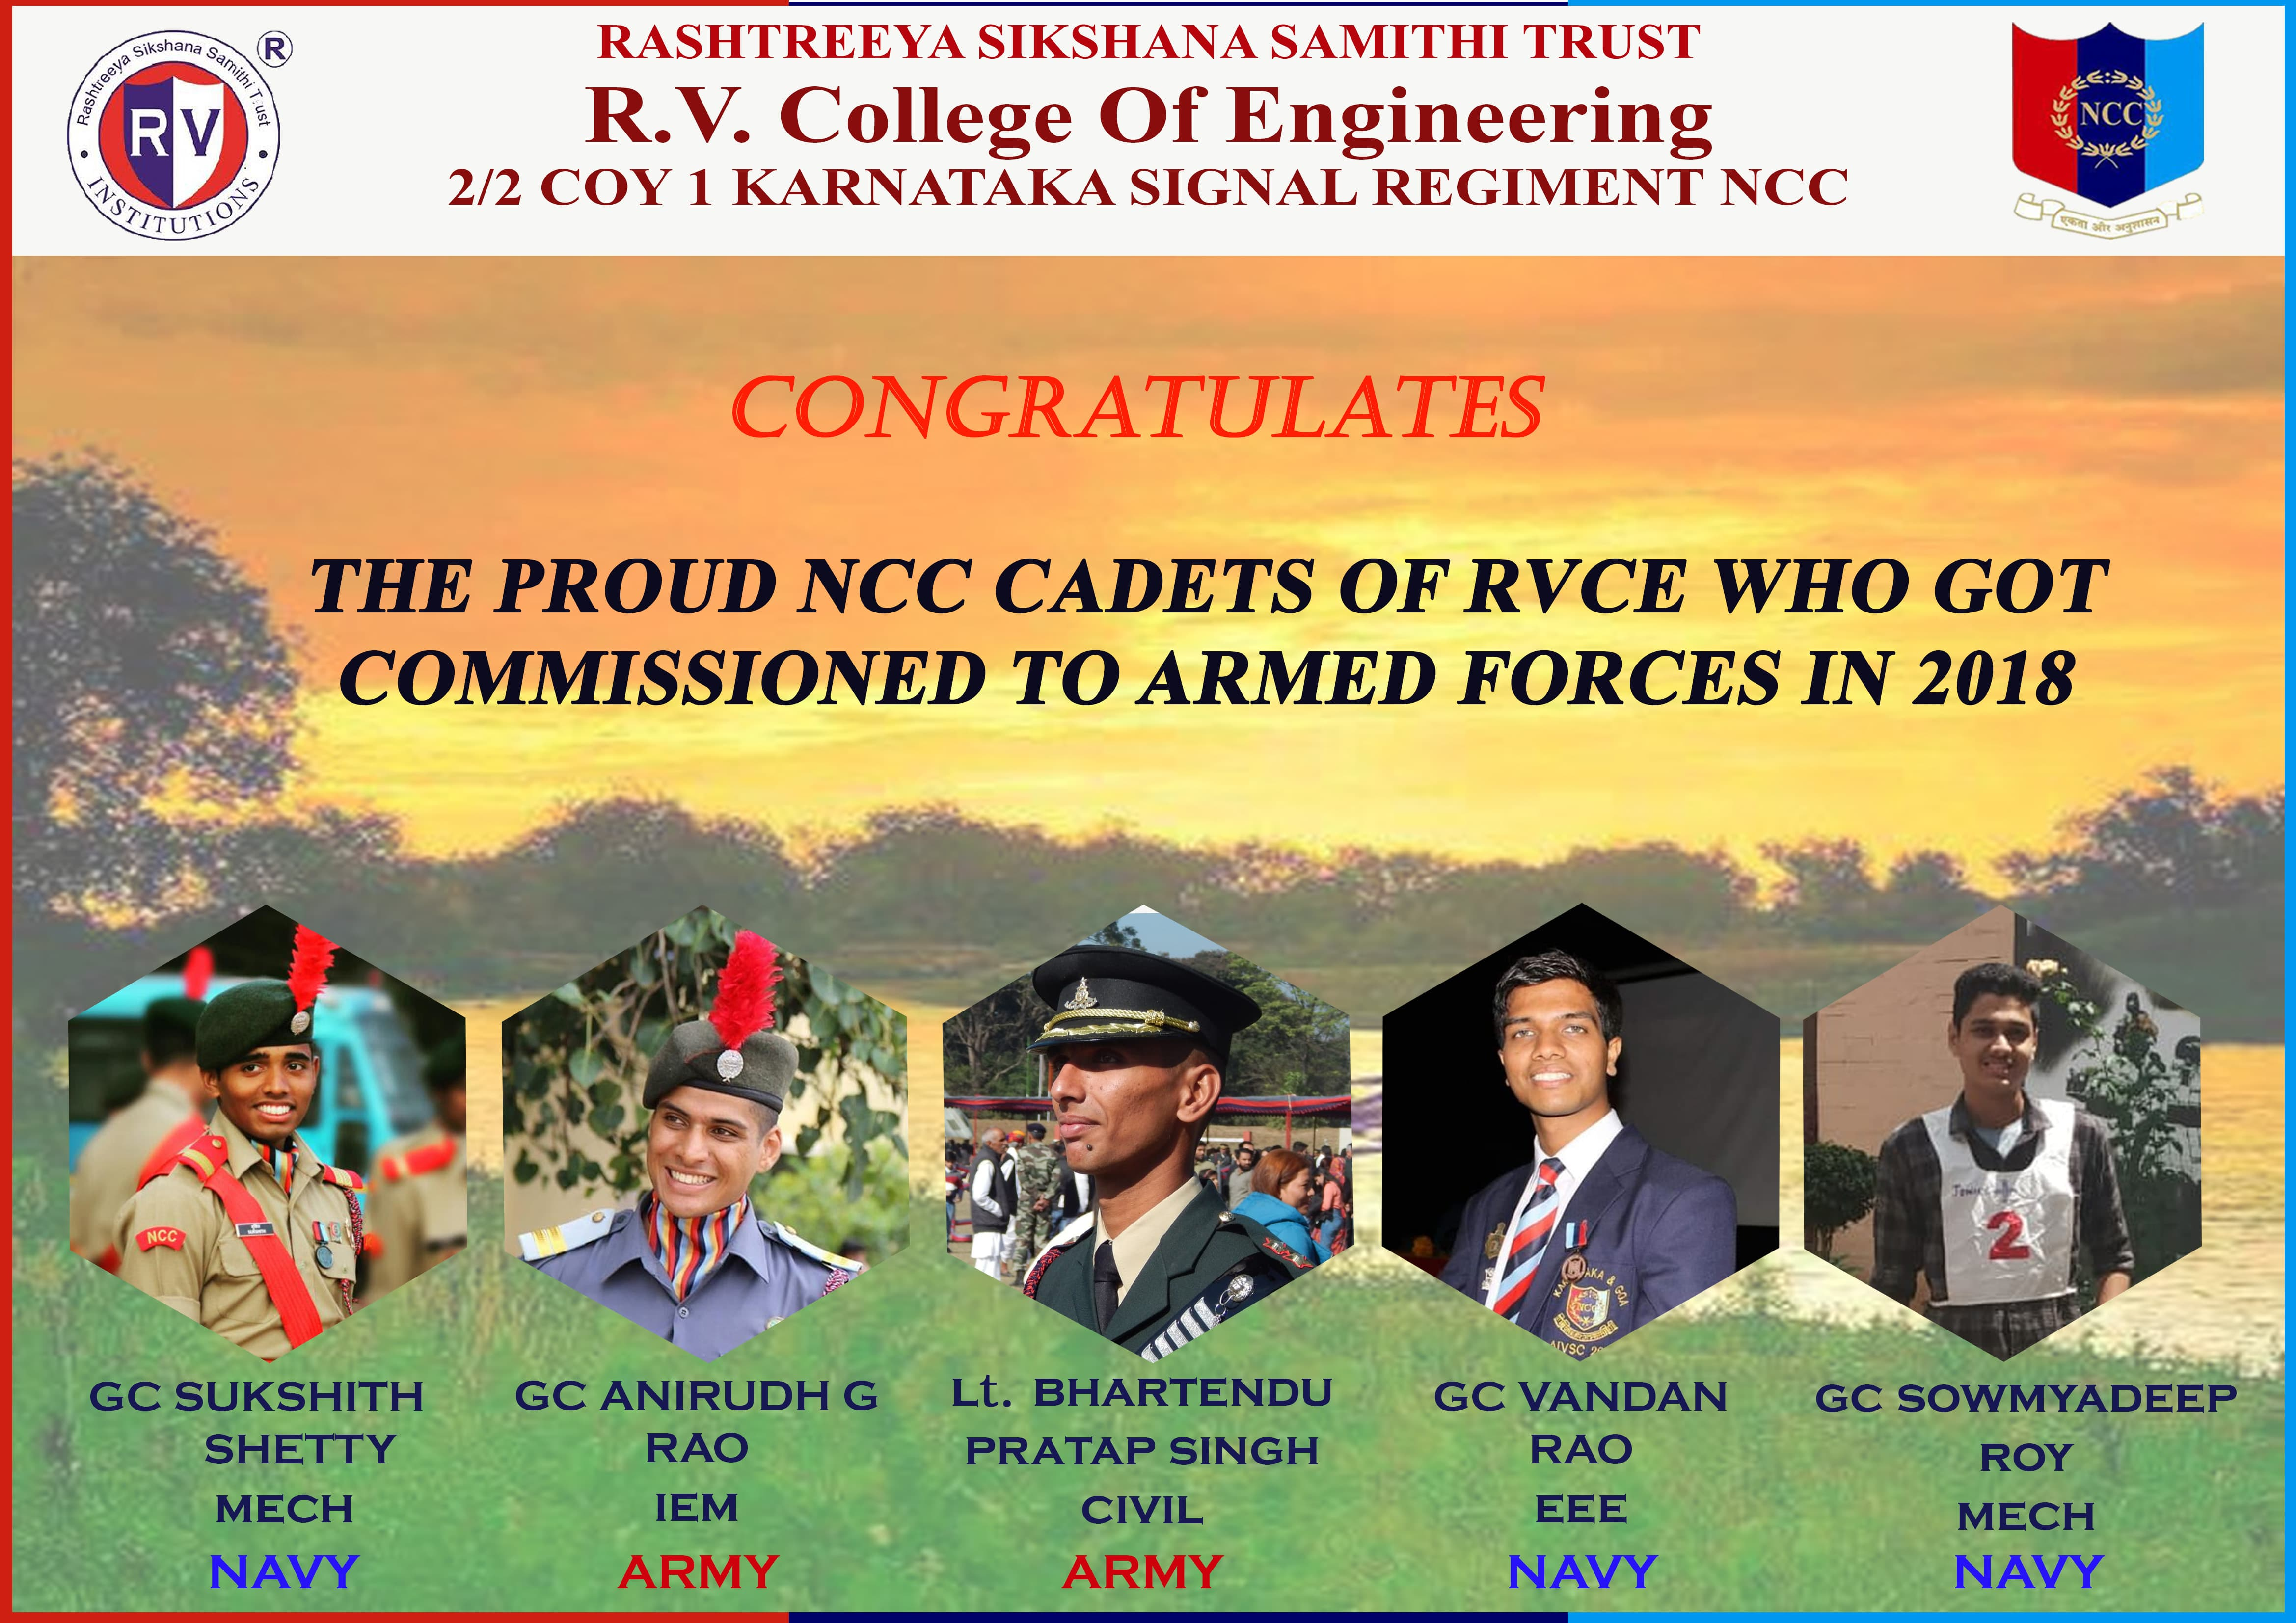 Achievements | R V College of Engineering